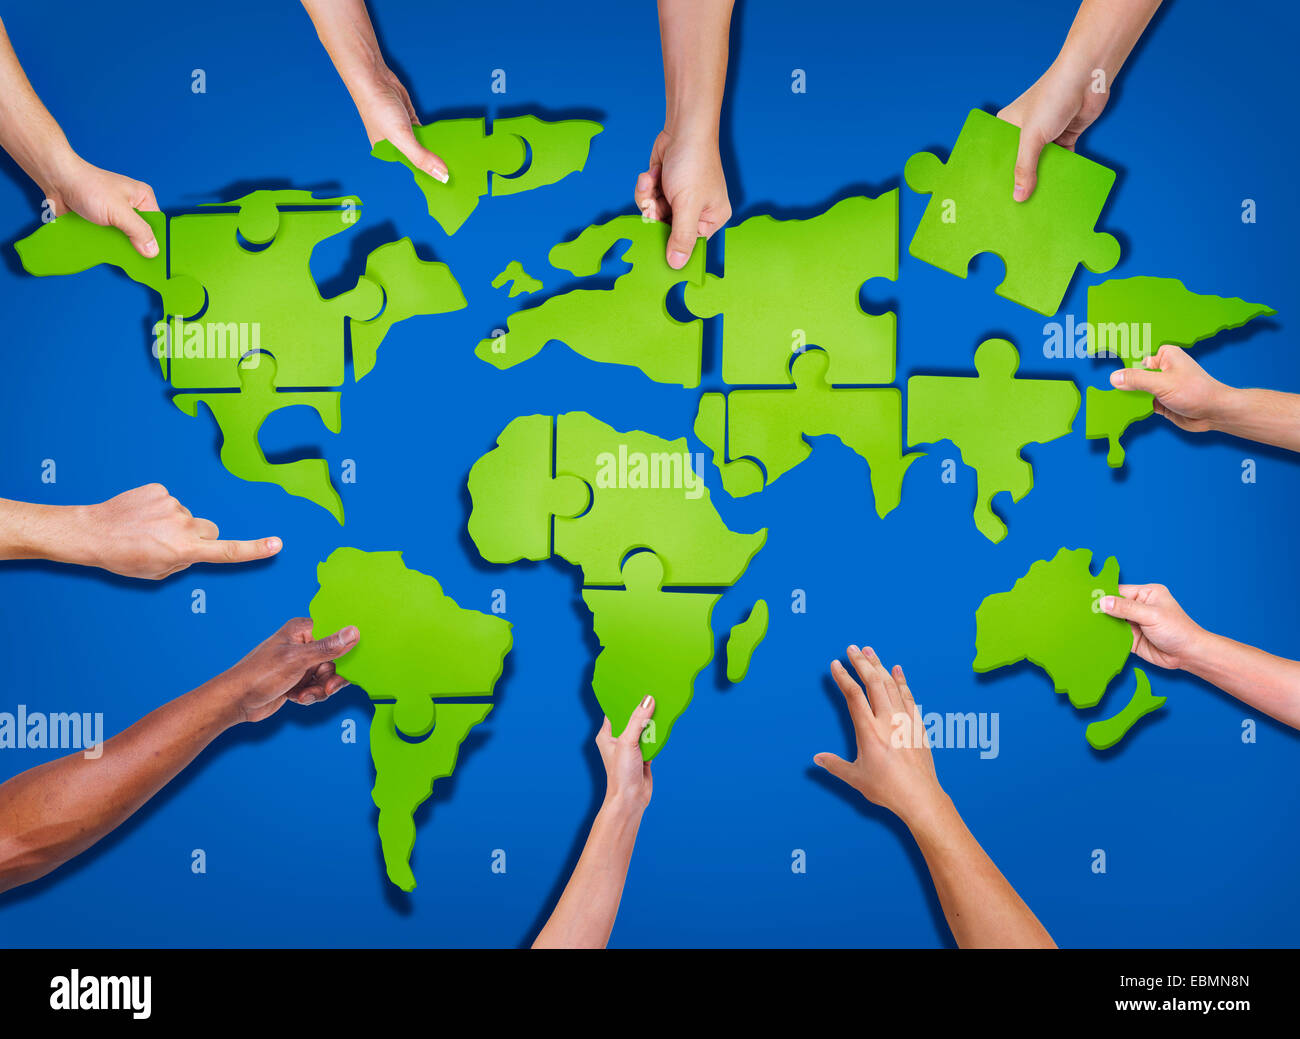 Asia map puzzle stock photos asia map puzzle stock images alamy aerial view of people forming world map with puzzle pieces stock image gumiabroncs